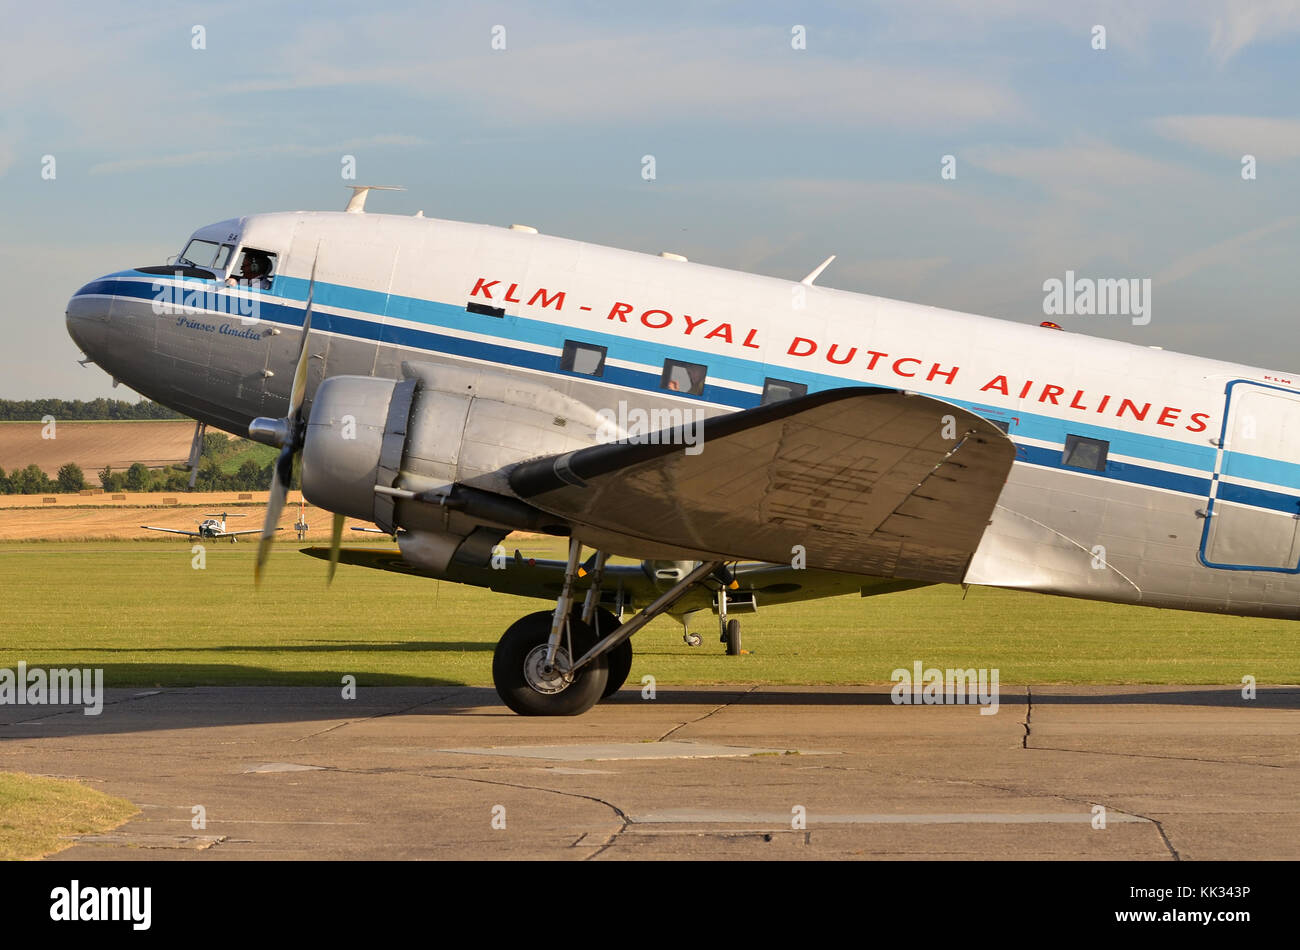 Douglas C-47A Skytrain, KLM Livery, Duxford, UK. The C-47 was the military designation for the DC-3 Dakota. - Stock Image